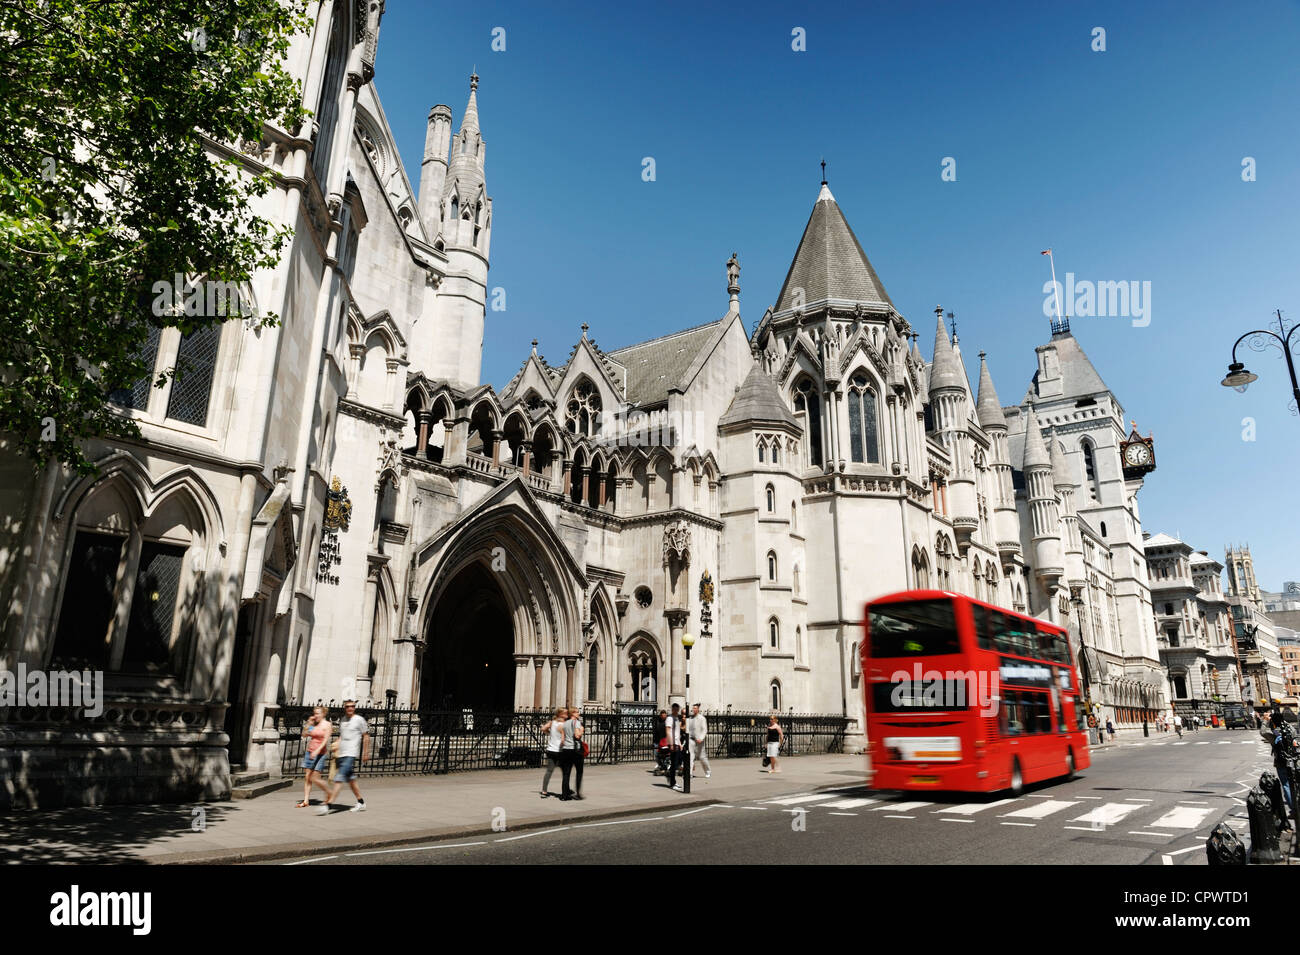 The Royal Courts of Justice in Central London - Stock Image